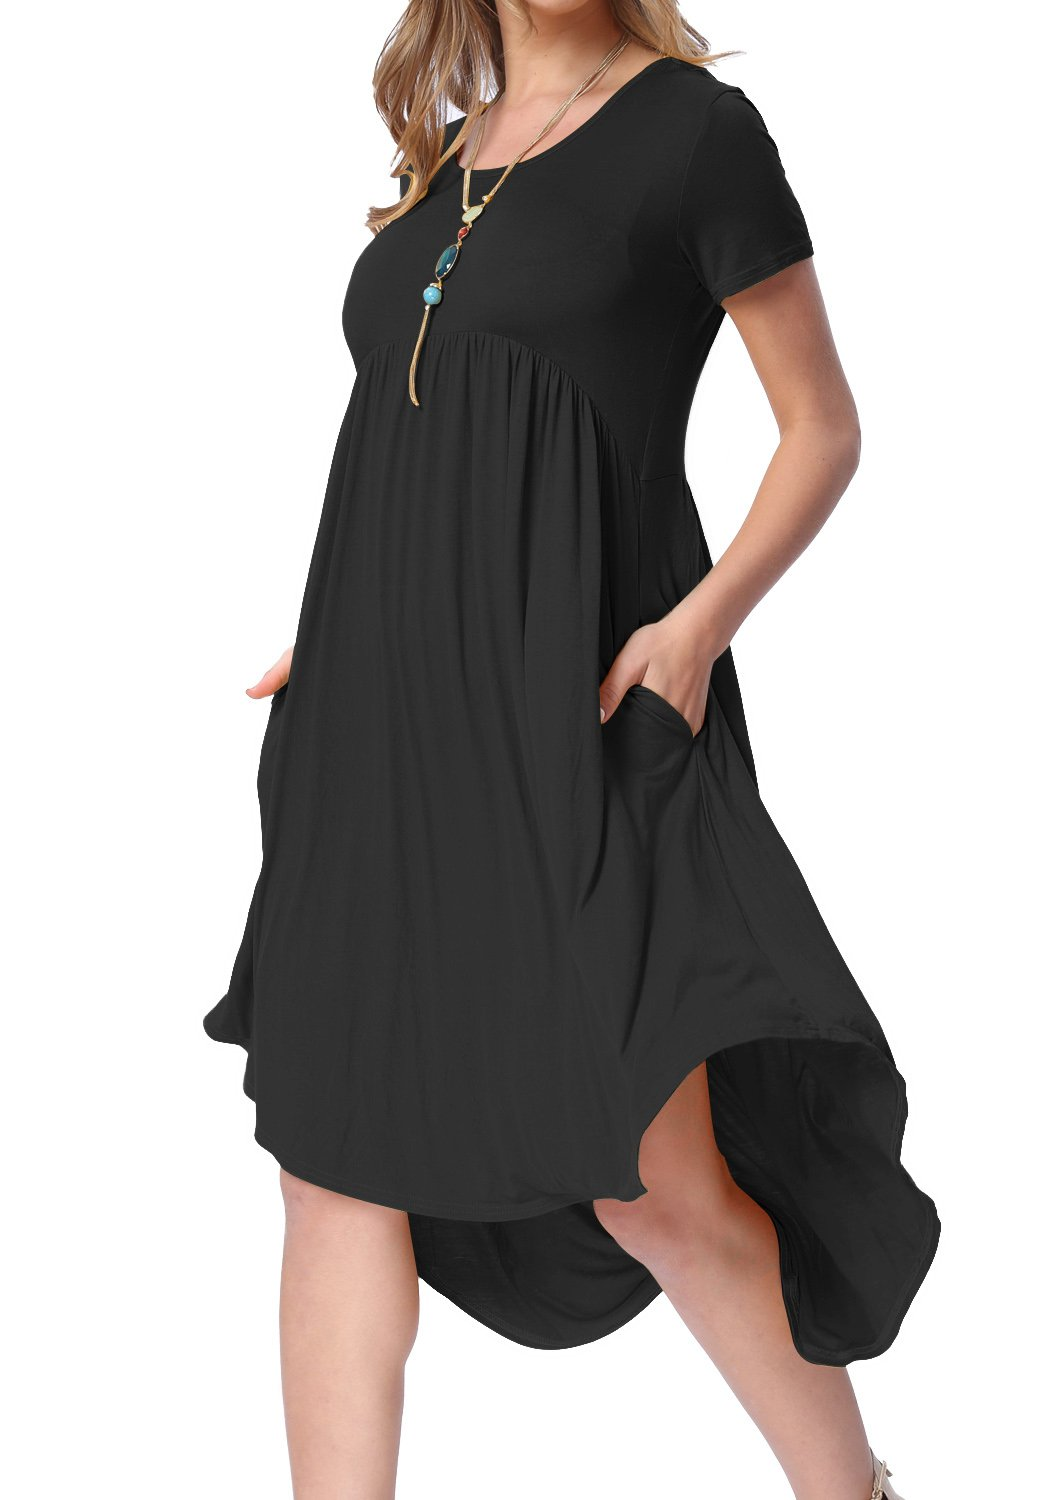 levaca Womens Summer Knit Short Sleeve Pockets Swing Casual Shift Dress Black XL